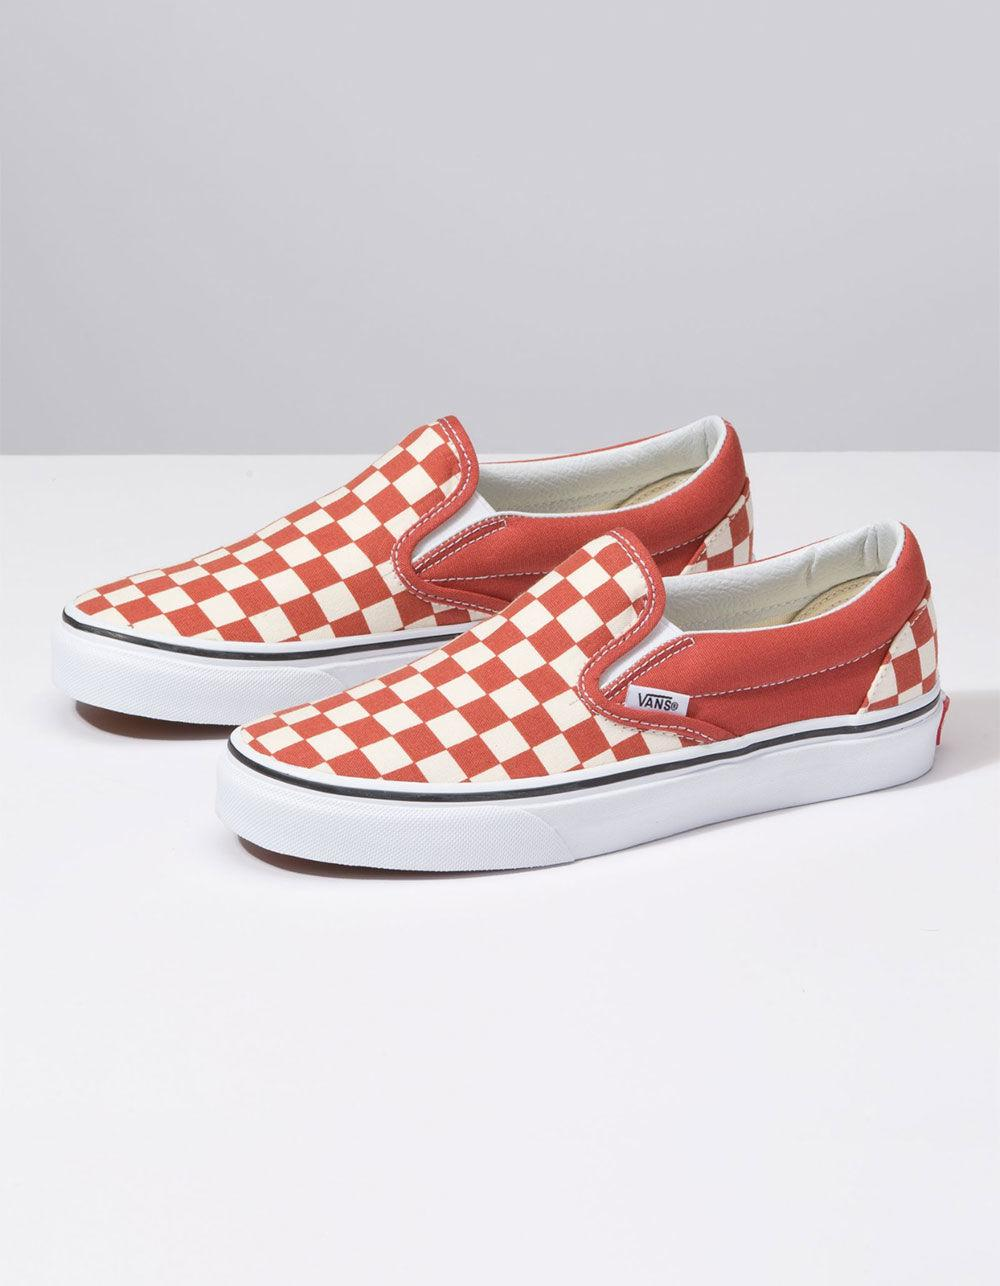 b96ea2f97a2a4f Lyst - Vans Checkerboard Classic Slip-on Hot Sauce   True White Womens Shoes  in White